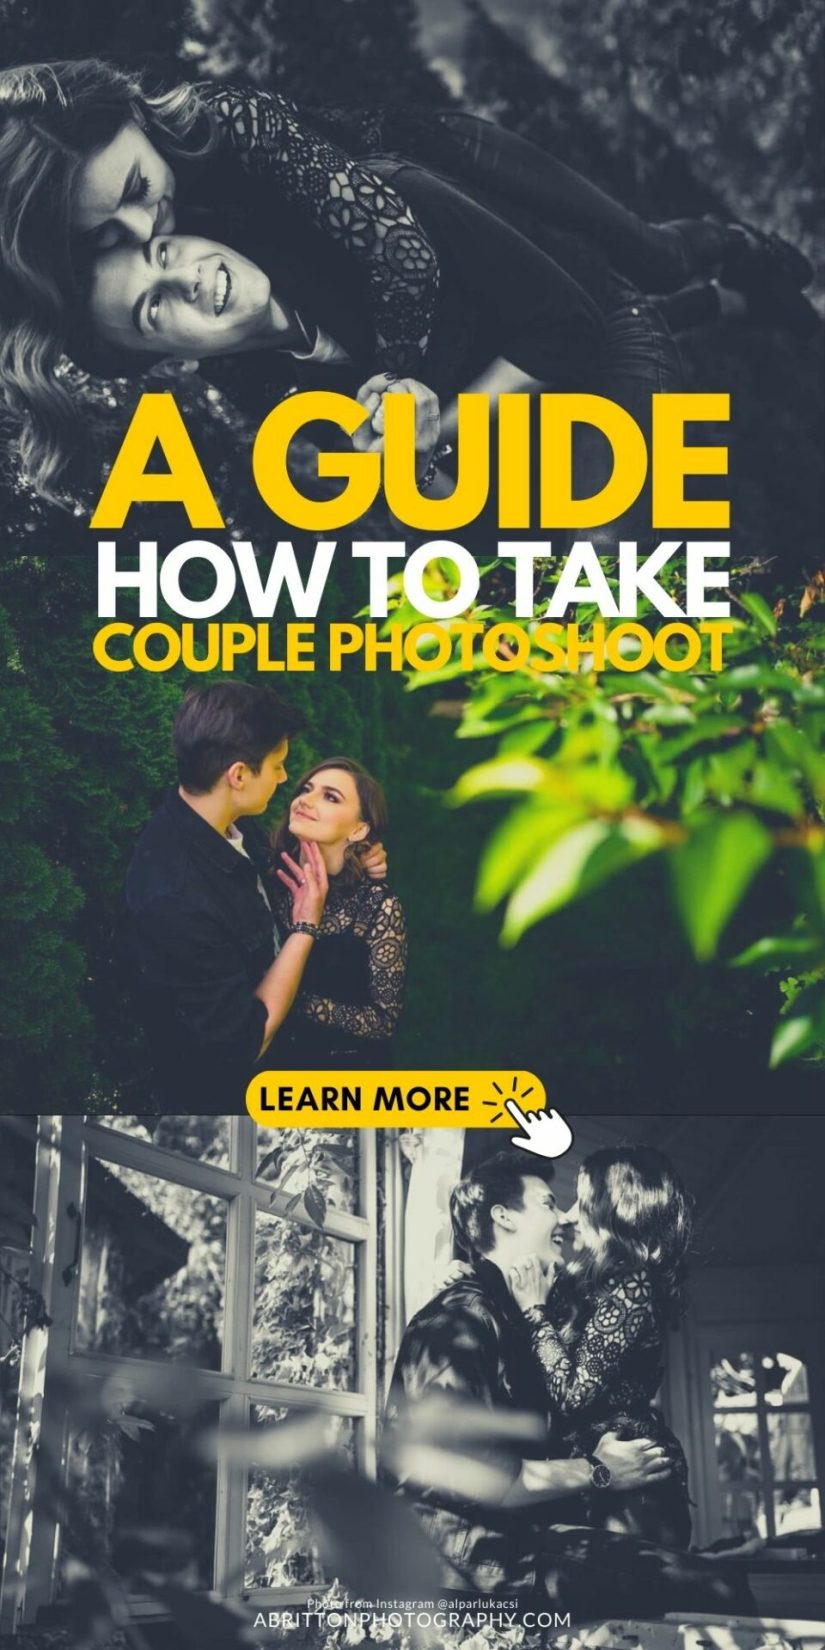 How to Take Couple Photoshoot - beautiful dating pictures couple photography ideas